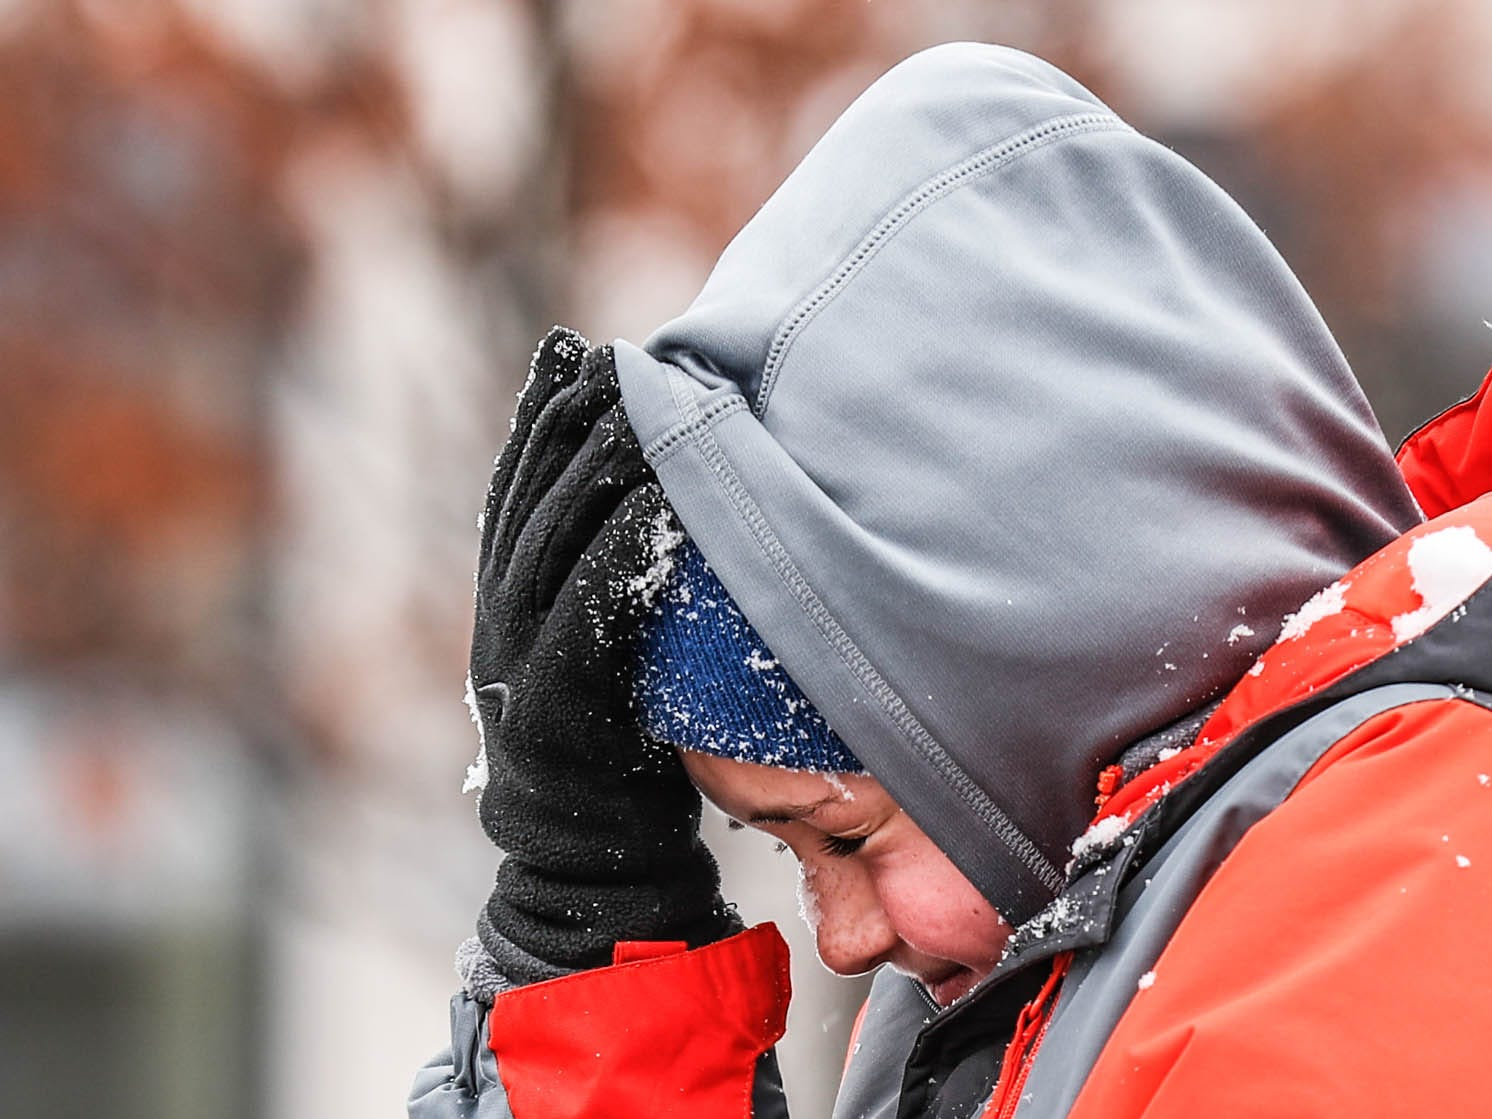 Quin Hendrich reacts to a snow clump in his face thrown by his brother during the second annual Carmel Festival of Ice, held at Center Green in Carmel Ind. on Sunday, Jan. 13, 2019.